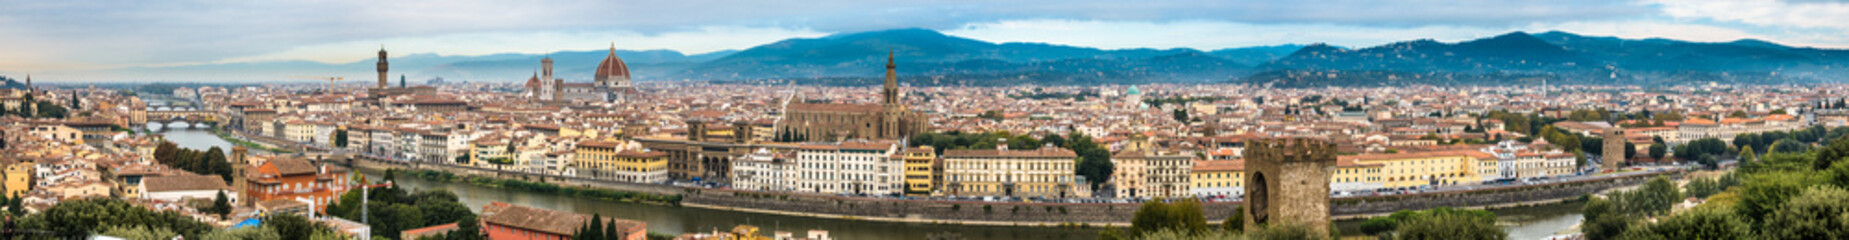 florence - firenze - italy Wall mural